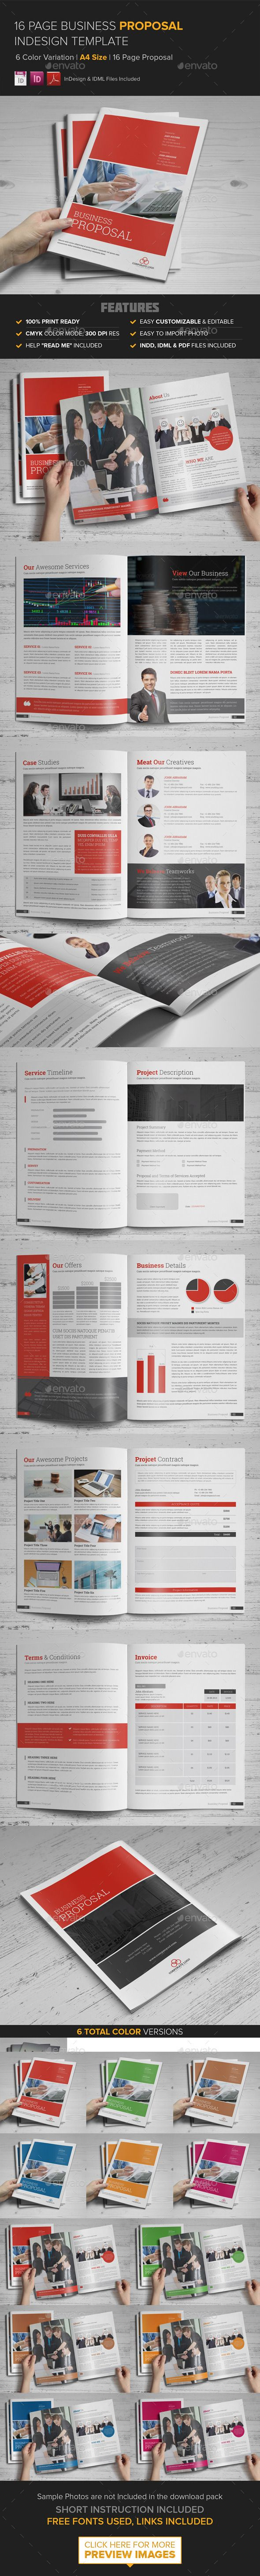 Business Proposal InDesign Template  - Proposals & Invoices Stationery